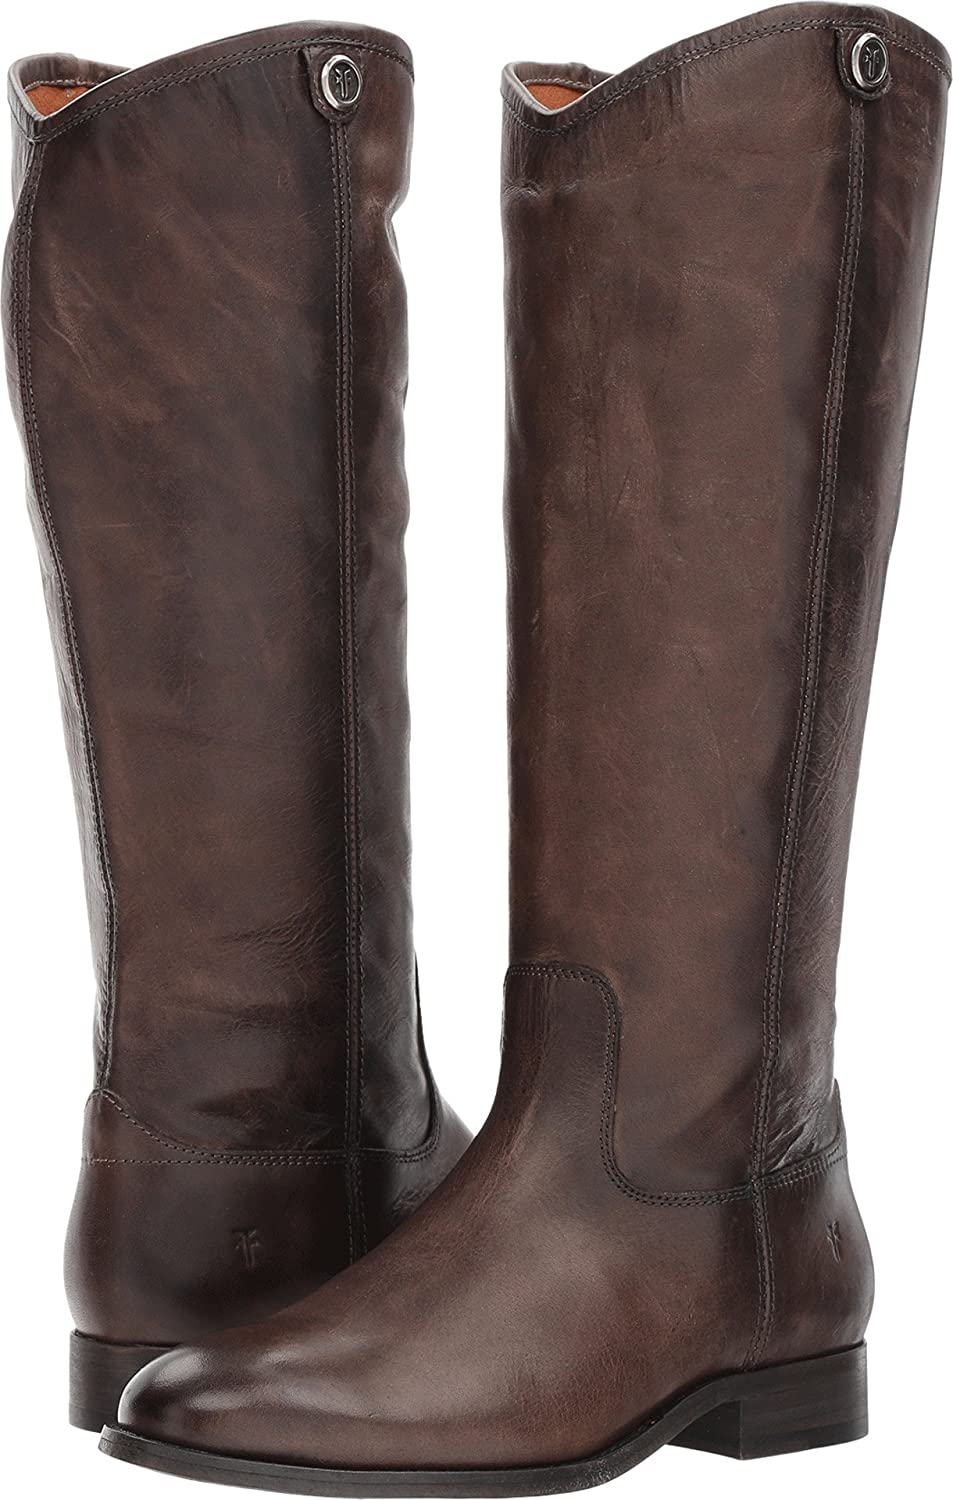 FRYE Women's Melissa Button 2 Riding Boot B06WRMQ8DD 10 B(M) US|Slate Extended